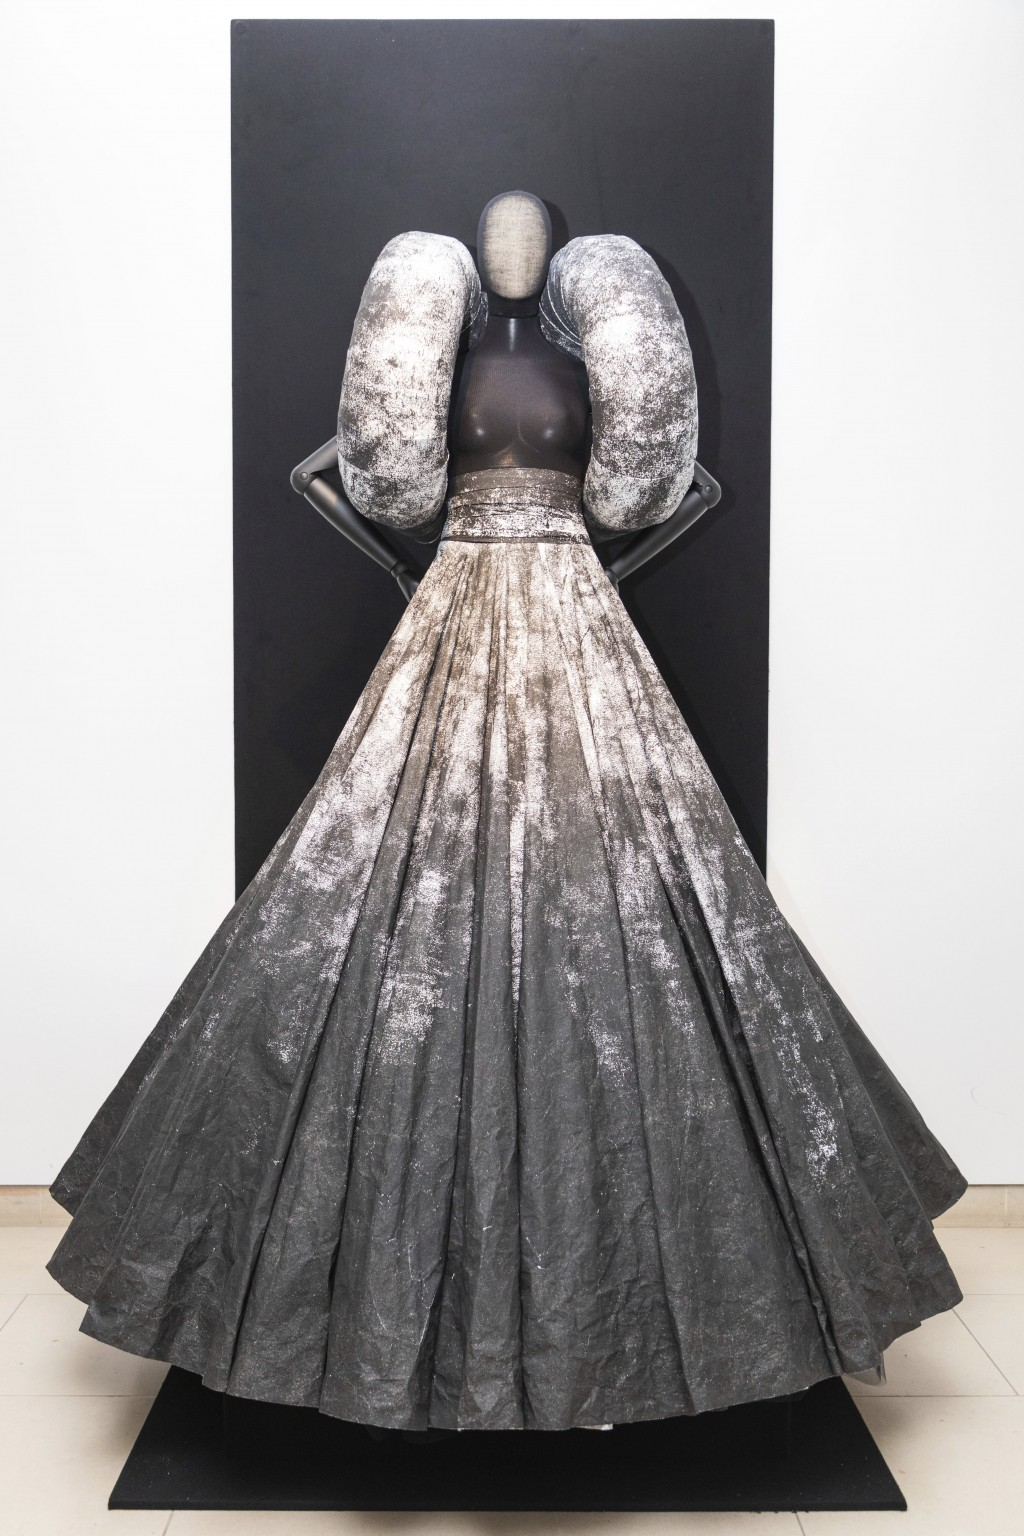 A creation by fashion designer Gareth Pugh is exhibited ahead of his London Fashion Week show in London, Wednesday, Sept. 16, 2020. (Photo by Vianney ...